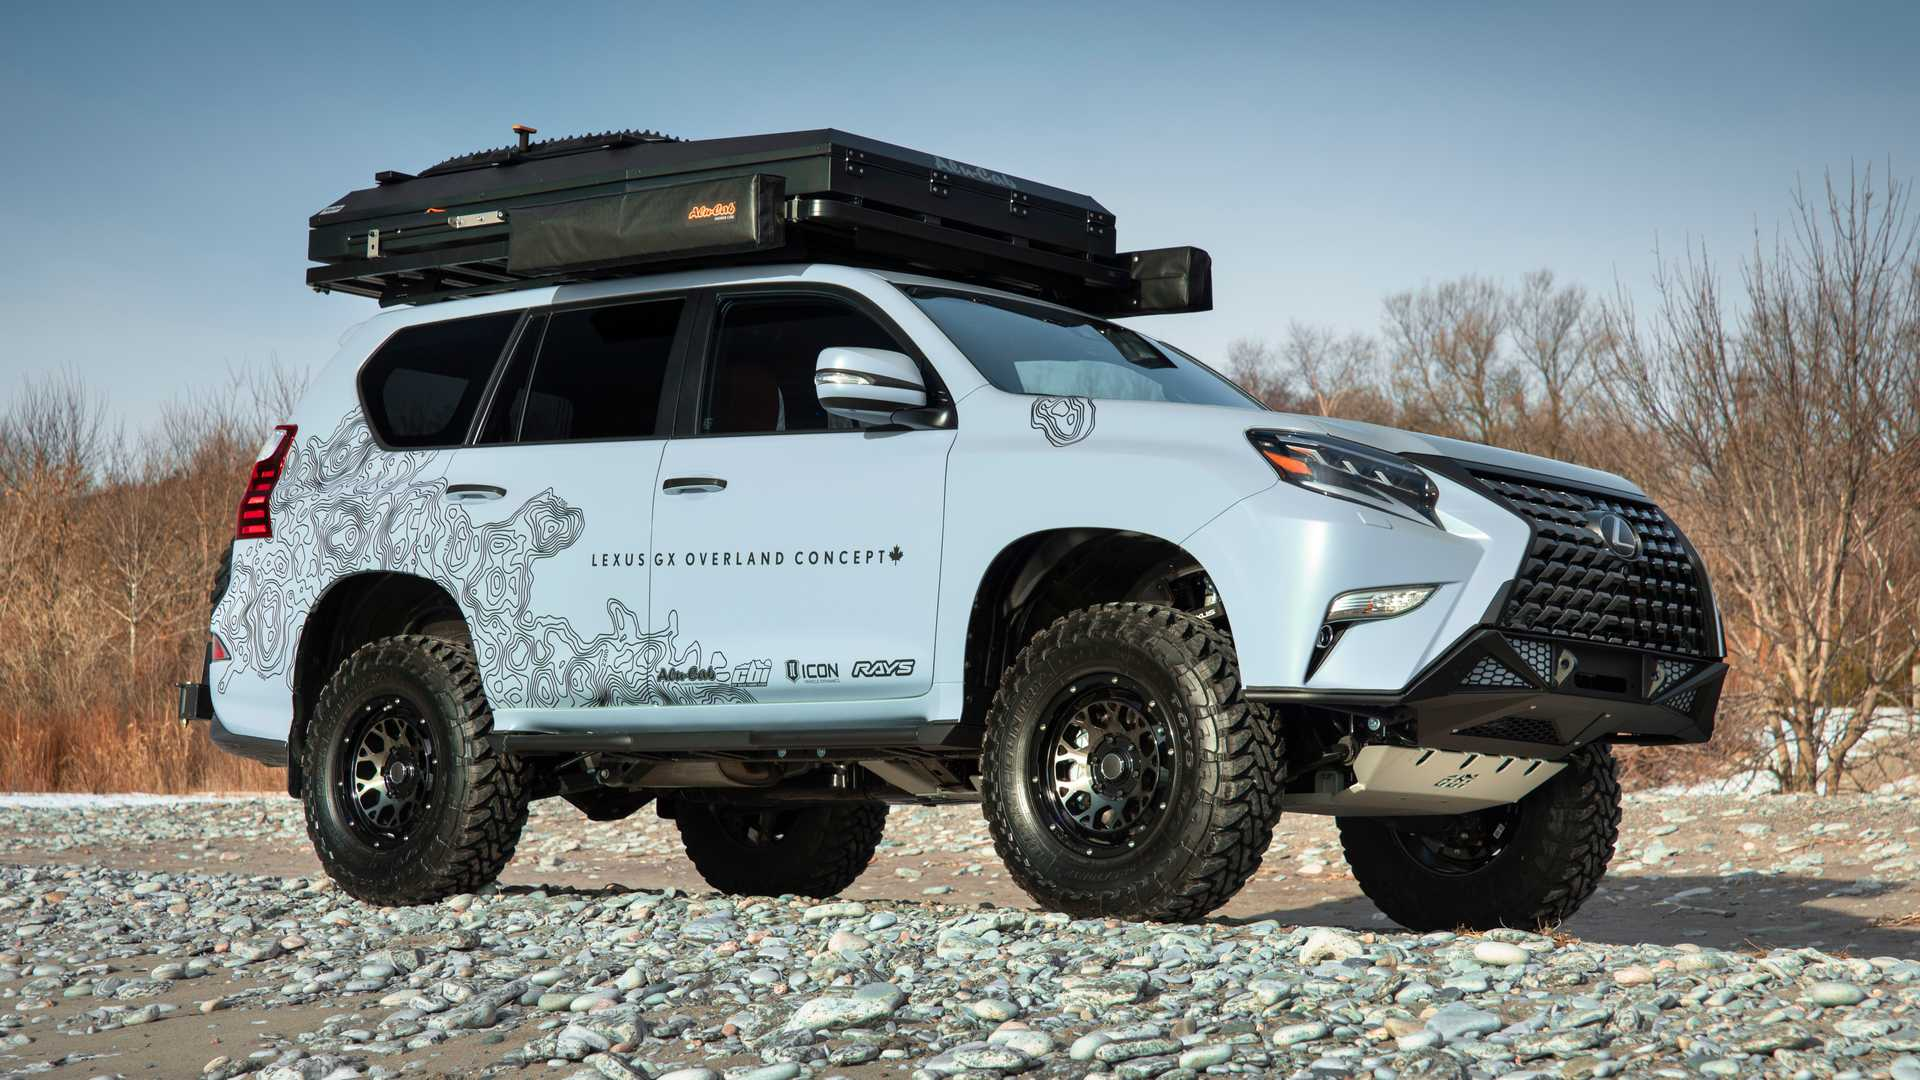 Lexus Gx Overland Concept Debuts With Rooftop Tent